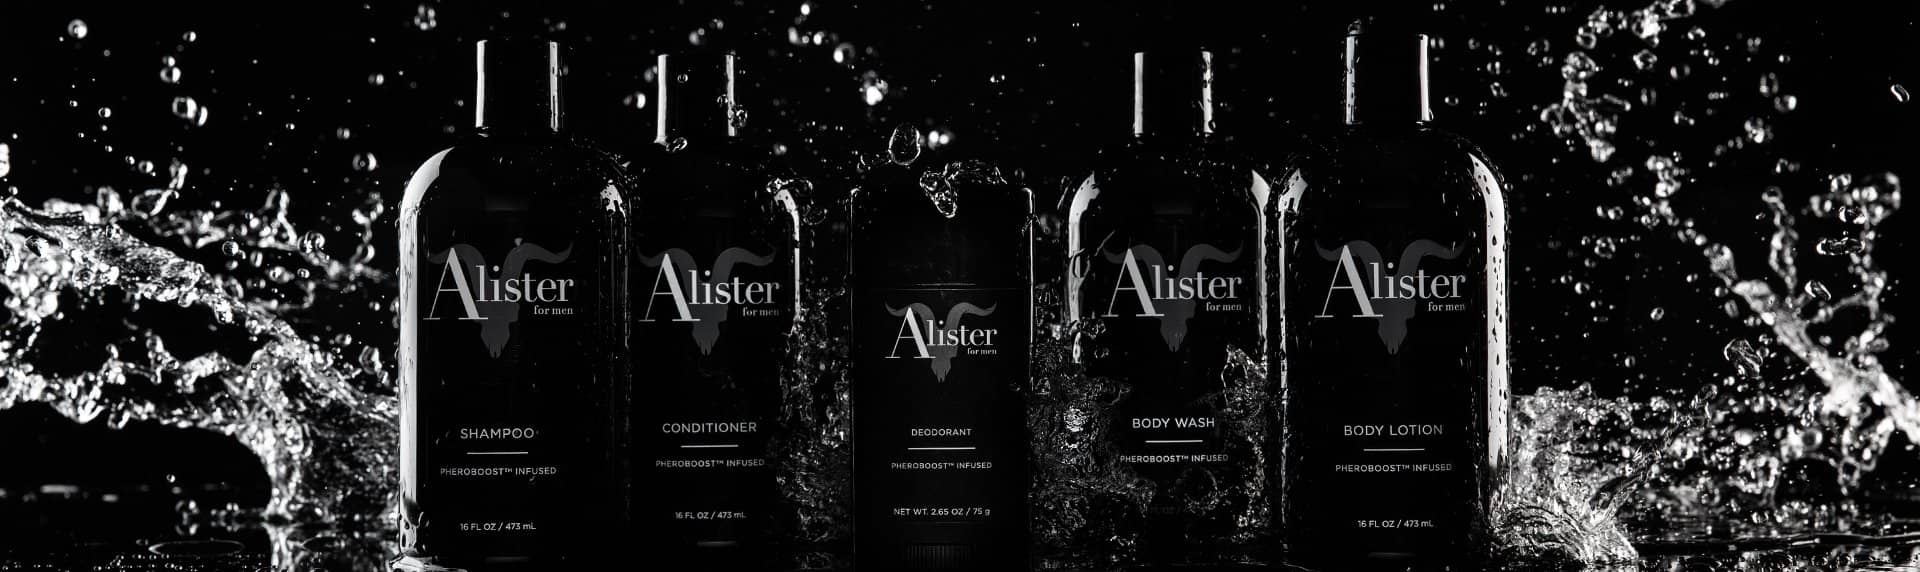 Dan Bilzerian on the launch of his grooming line, Alister in India